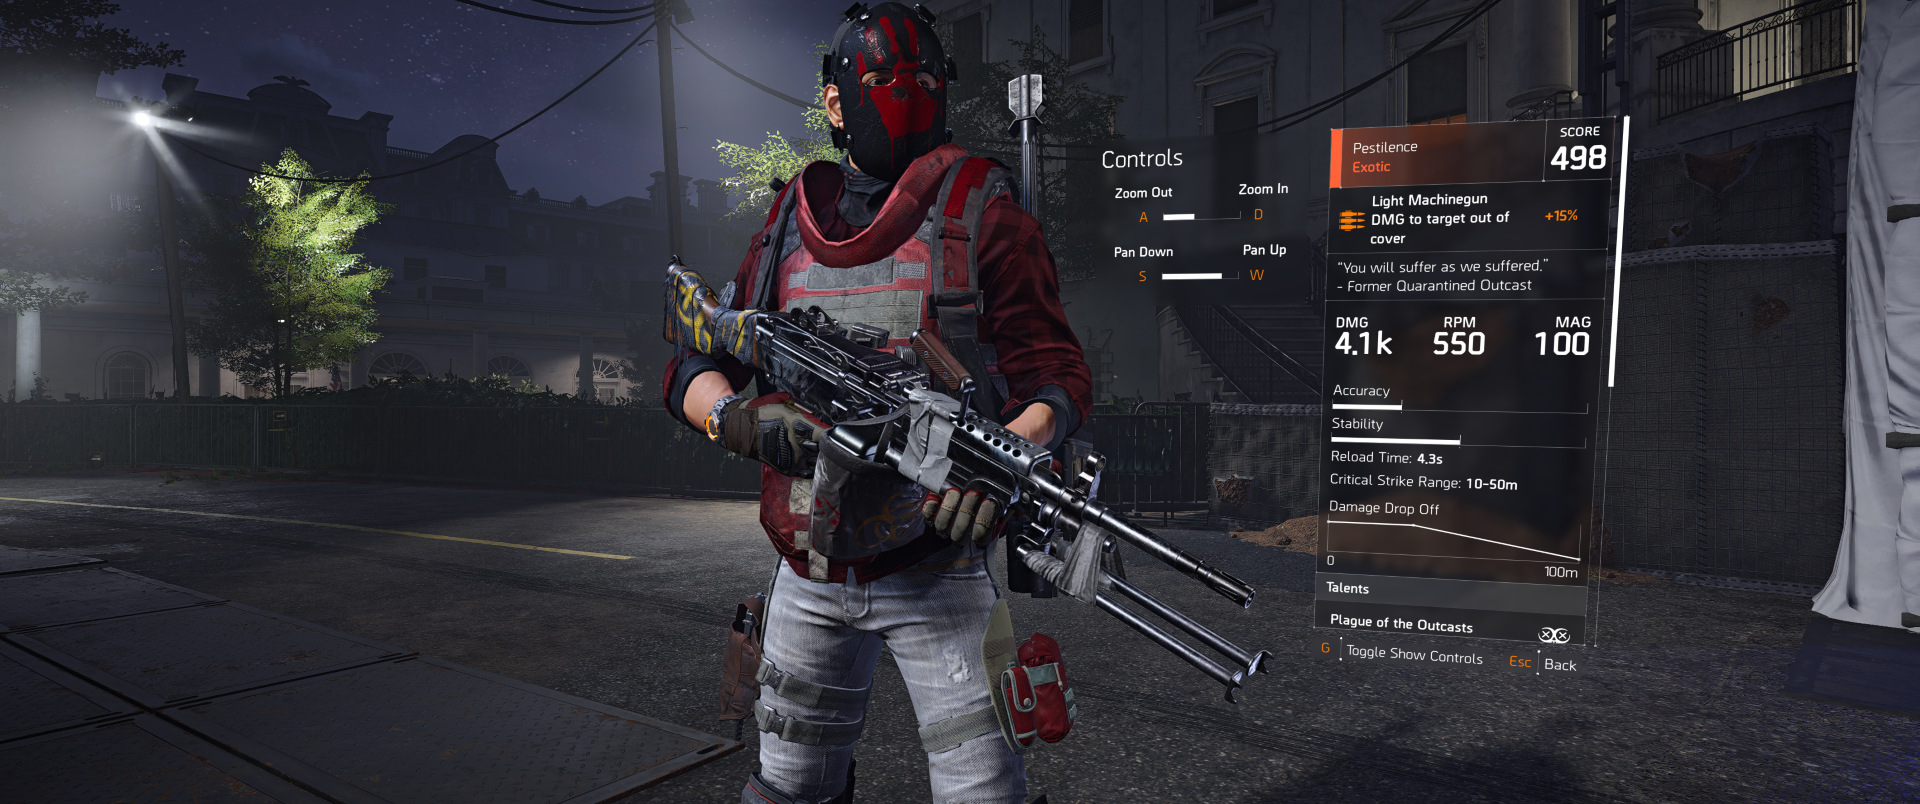 Tom Clancy's The Division 2 Screenshot 2019.04.08 - 22.35.46.82 (Large).png